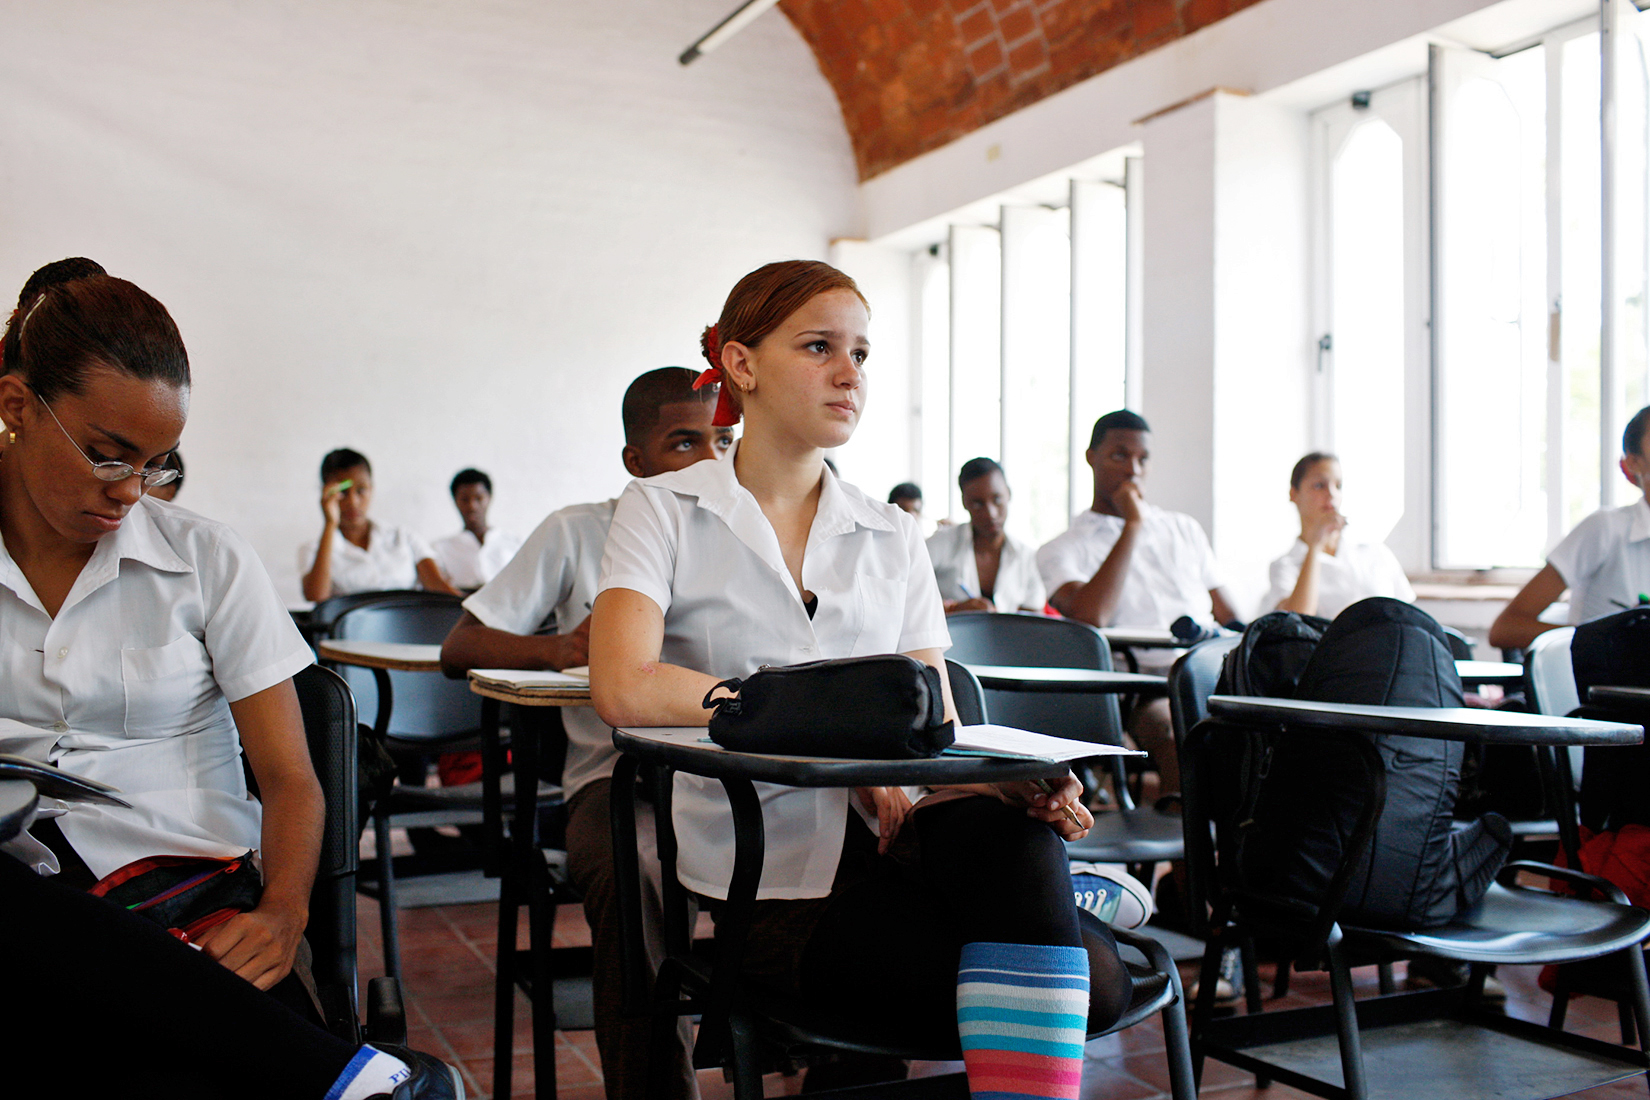 National School of Arts in Cuba lifestyle photography